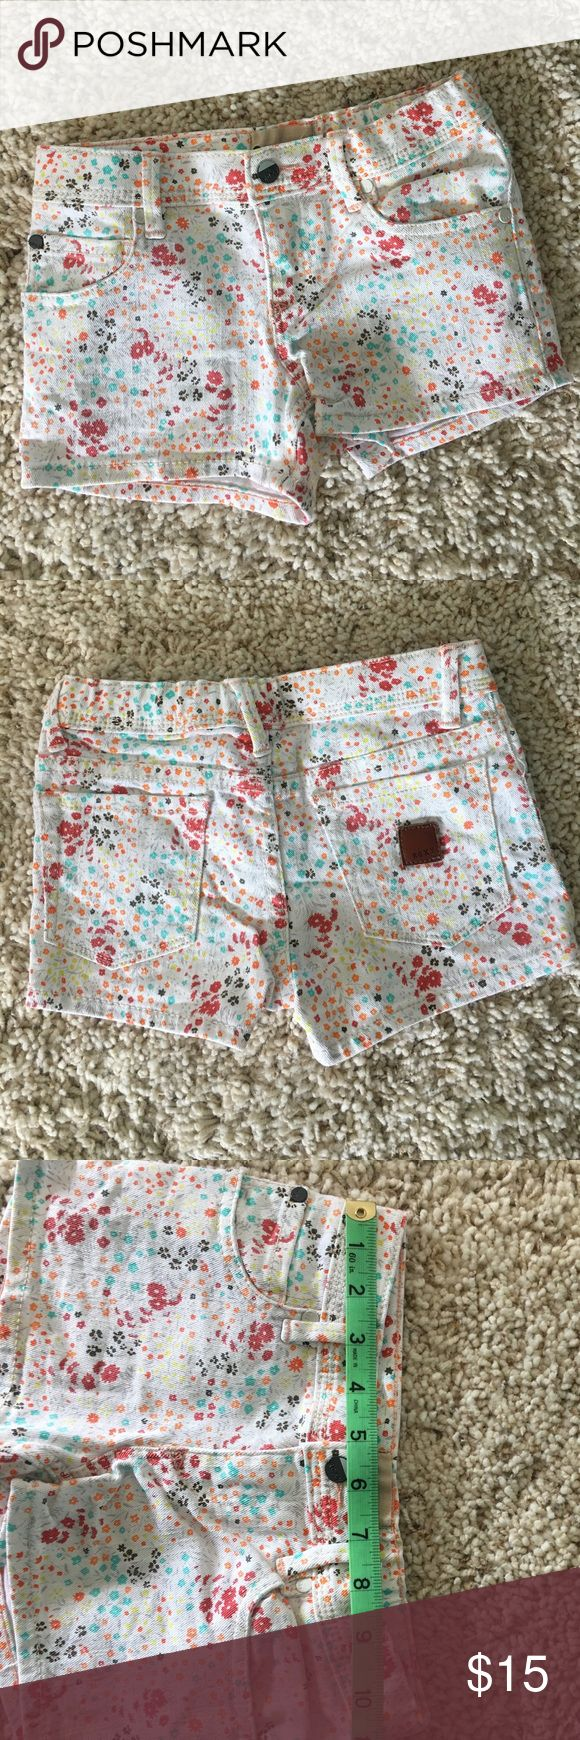 """NWOT 🌼 Roxy Denim Shorts 🌼 little girl size 6X NEW WITHOUT TAGS 🌼 Adorable! 11"""" waist 7 1/2"""" length from waist to bottom of short!  --------------------------------------------------------------------------------------🌼🌼🌼🌼🌼🌼🌼🌼🌼🌼🌼🌼🌼🌼🌼🌼🌼🌼🌼🌼No rips, stains or tears. No trades! Roxy Bottoms Shorts"""